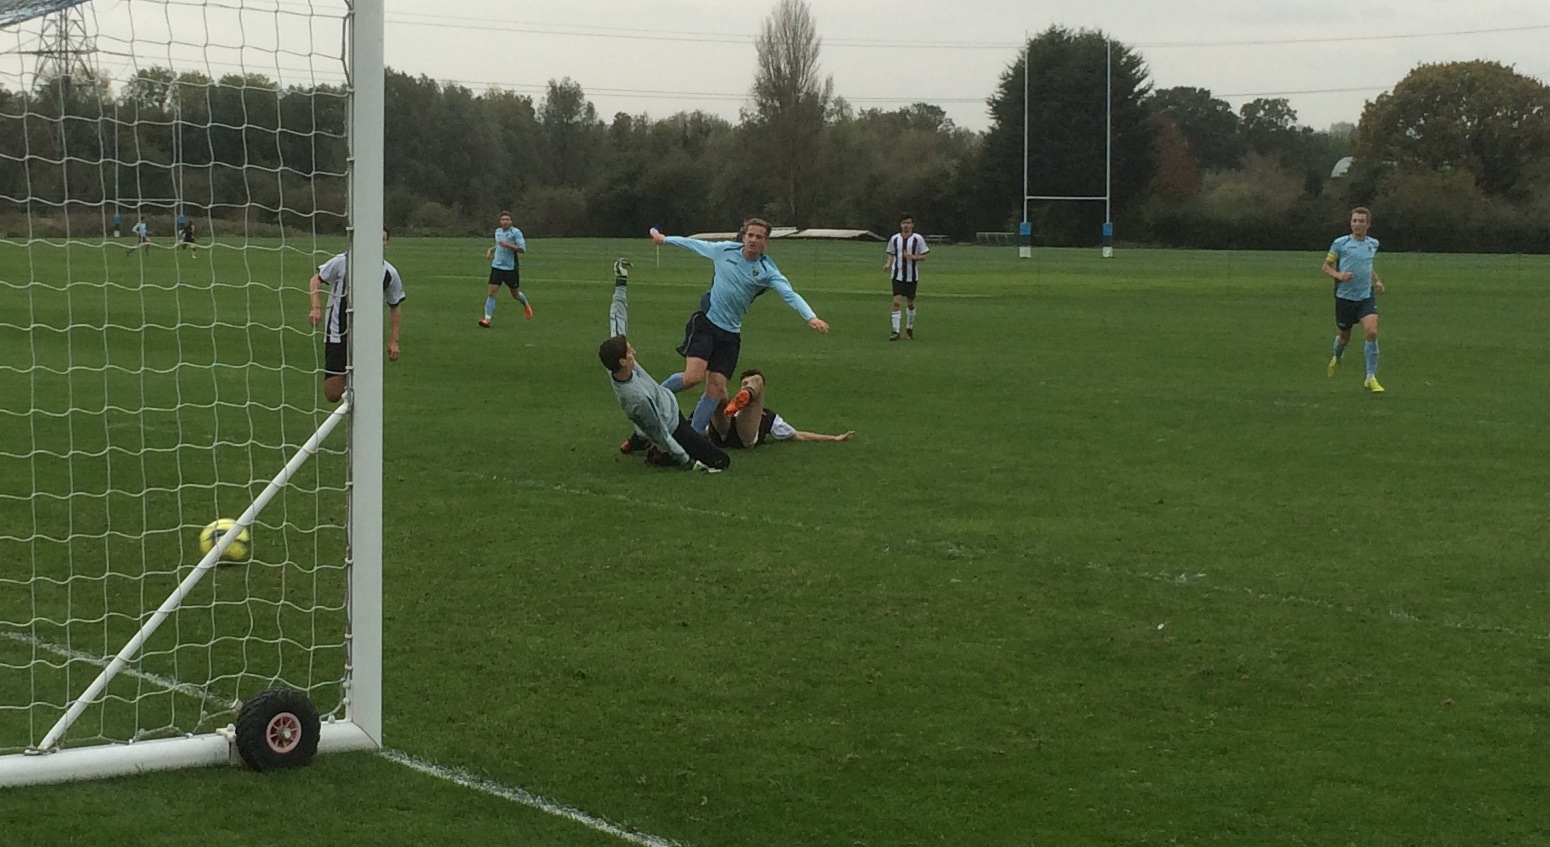 Sam Pledger curls the ball past the keeper